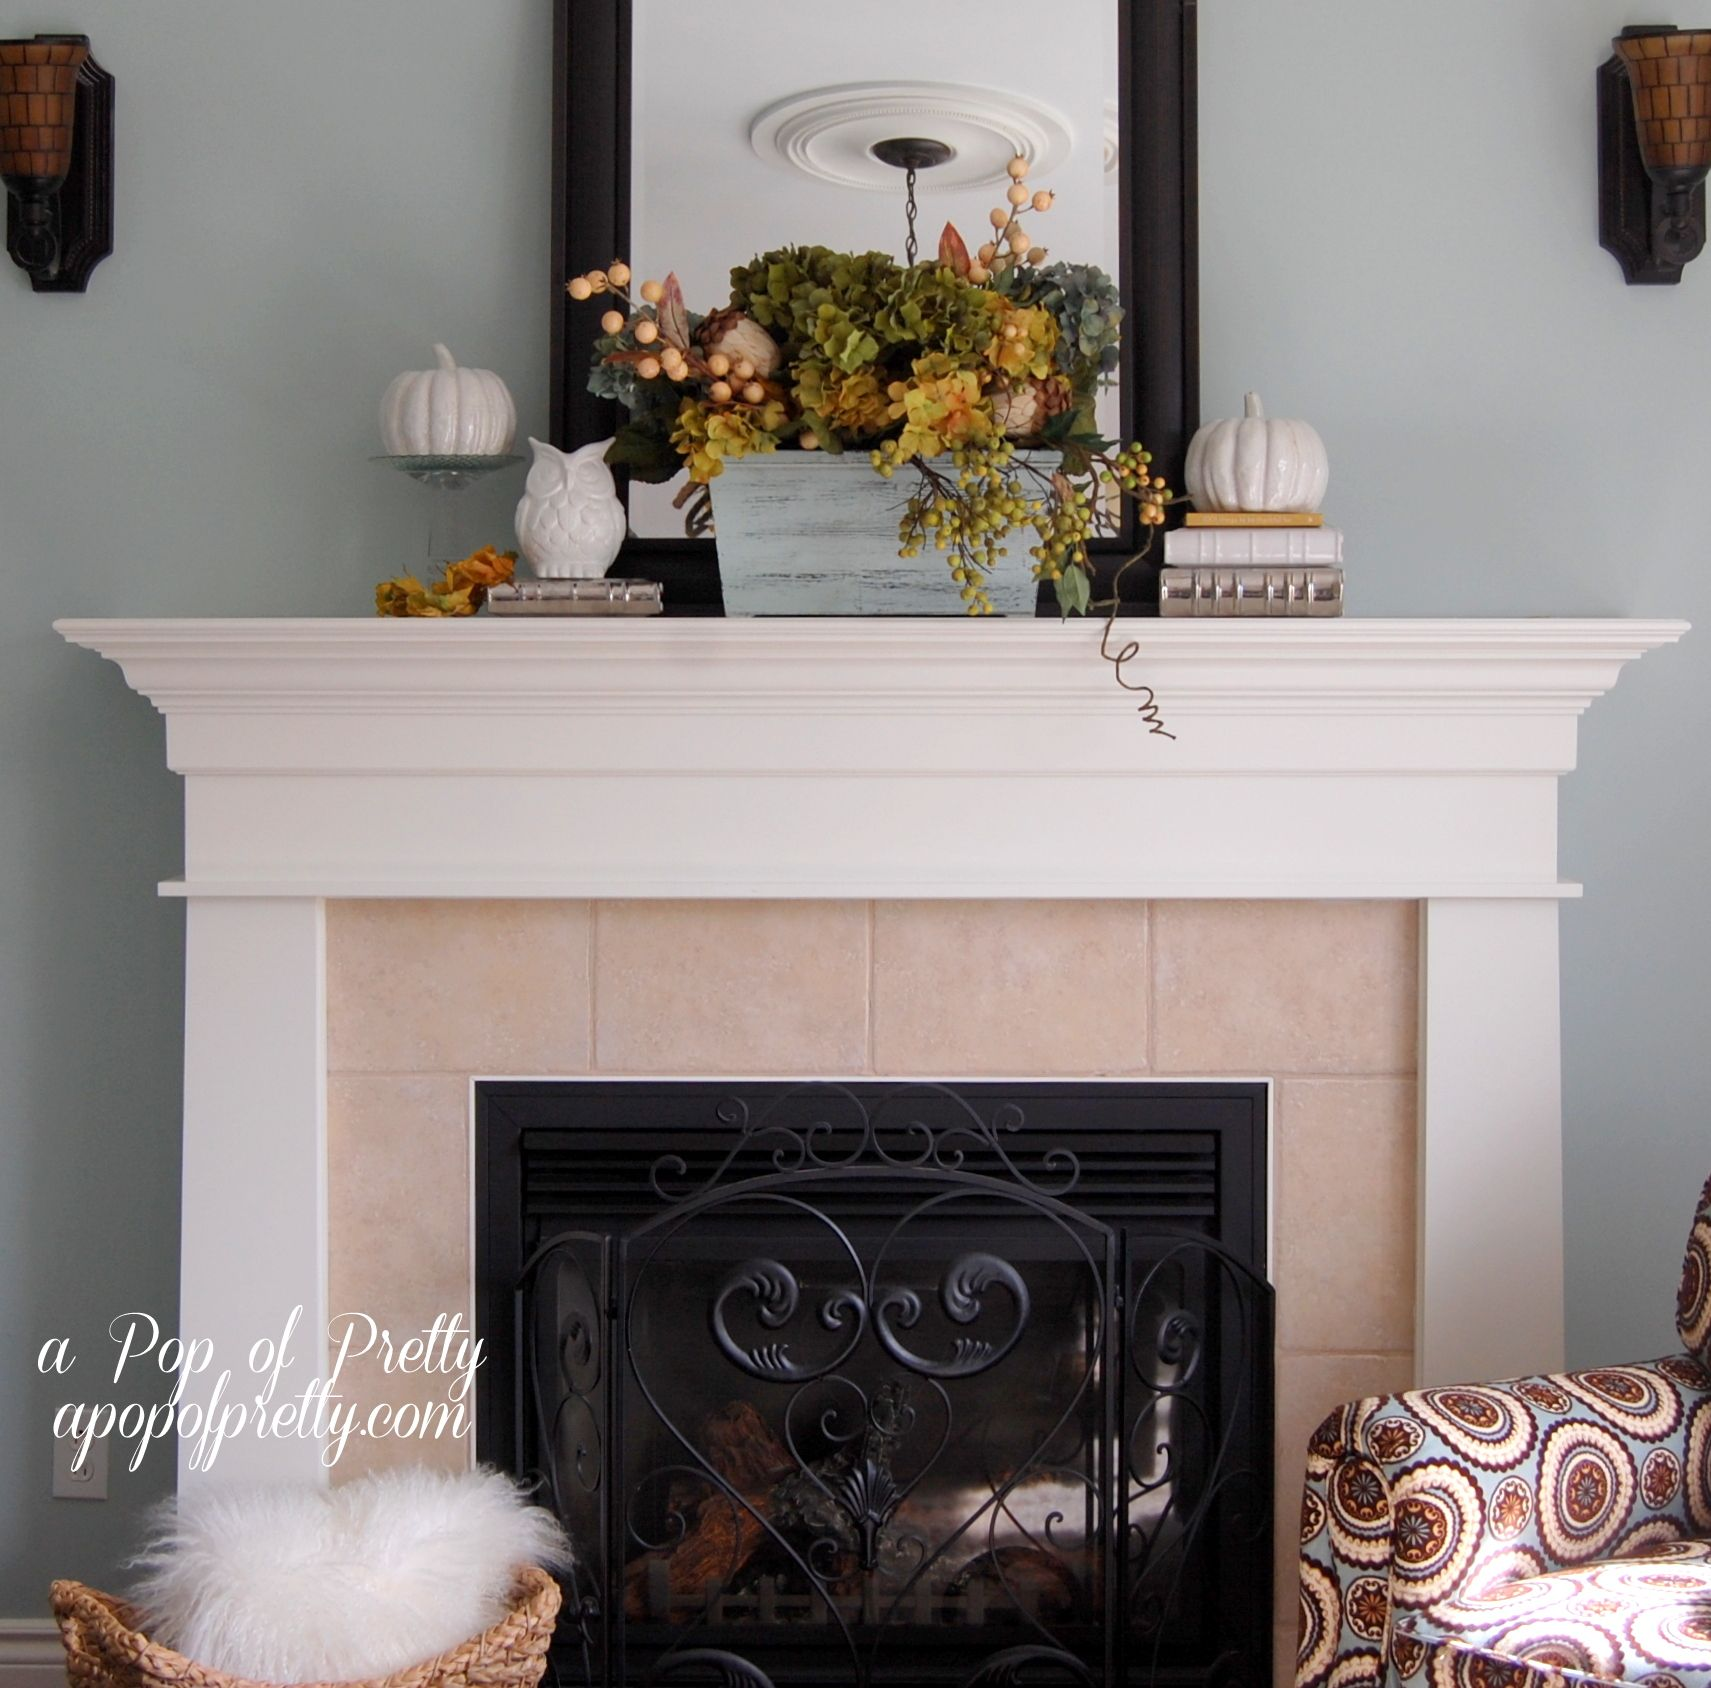 Fall Fireplace Mantel Decorating Ideas: Fall Mantel Ideas In 2019